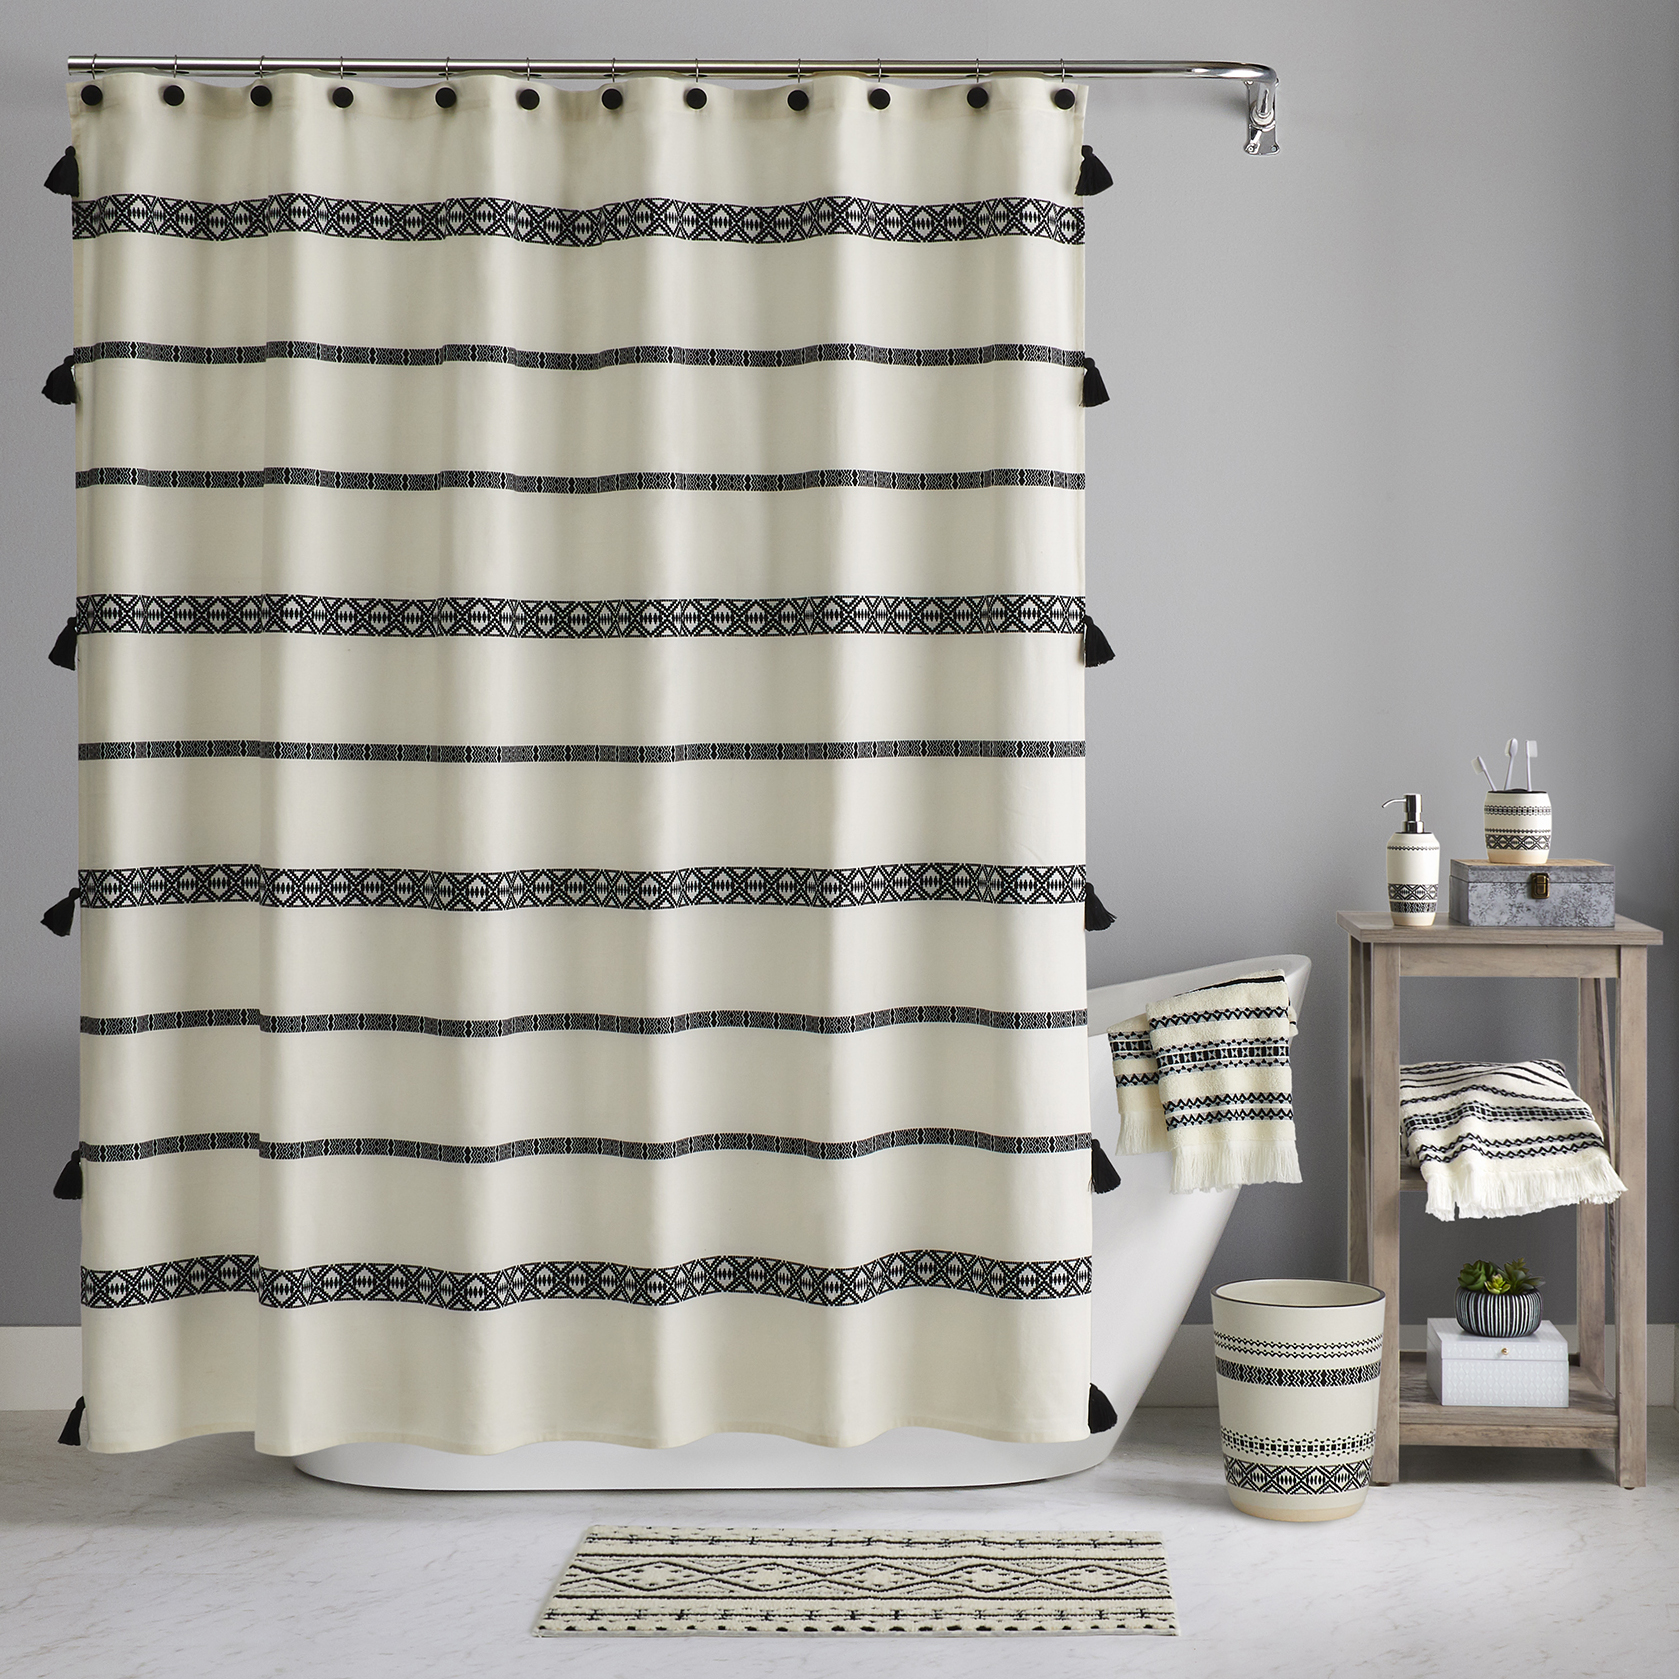 Better Homes And Gardens Boho Chic Shower Curtain Walmart Com Walmart Com